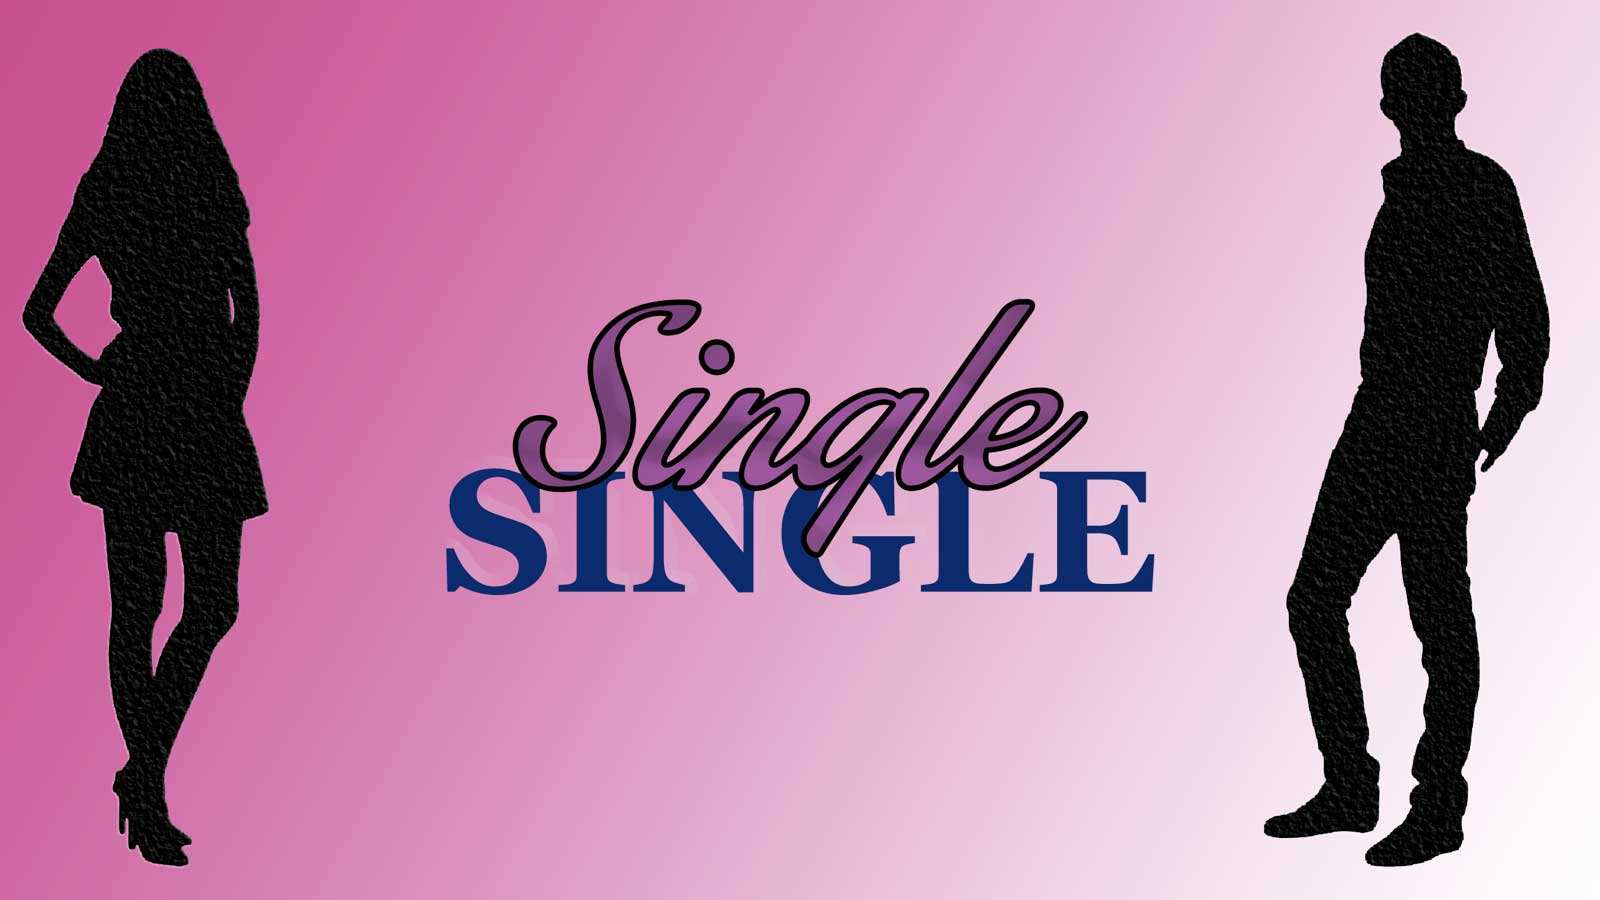 More hilarious catch-ups and revelations unfold as Single / Single Season 2 continues